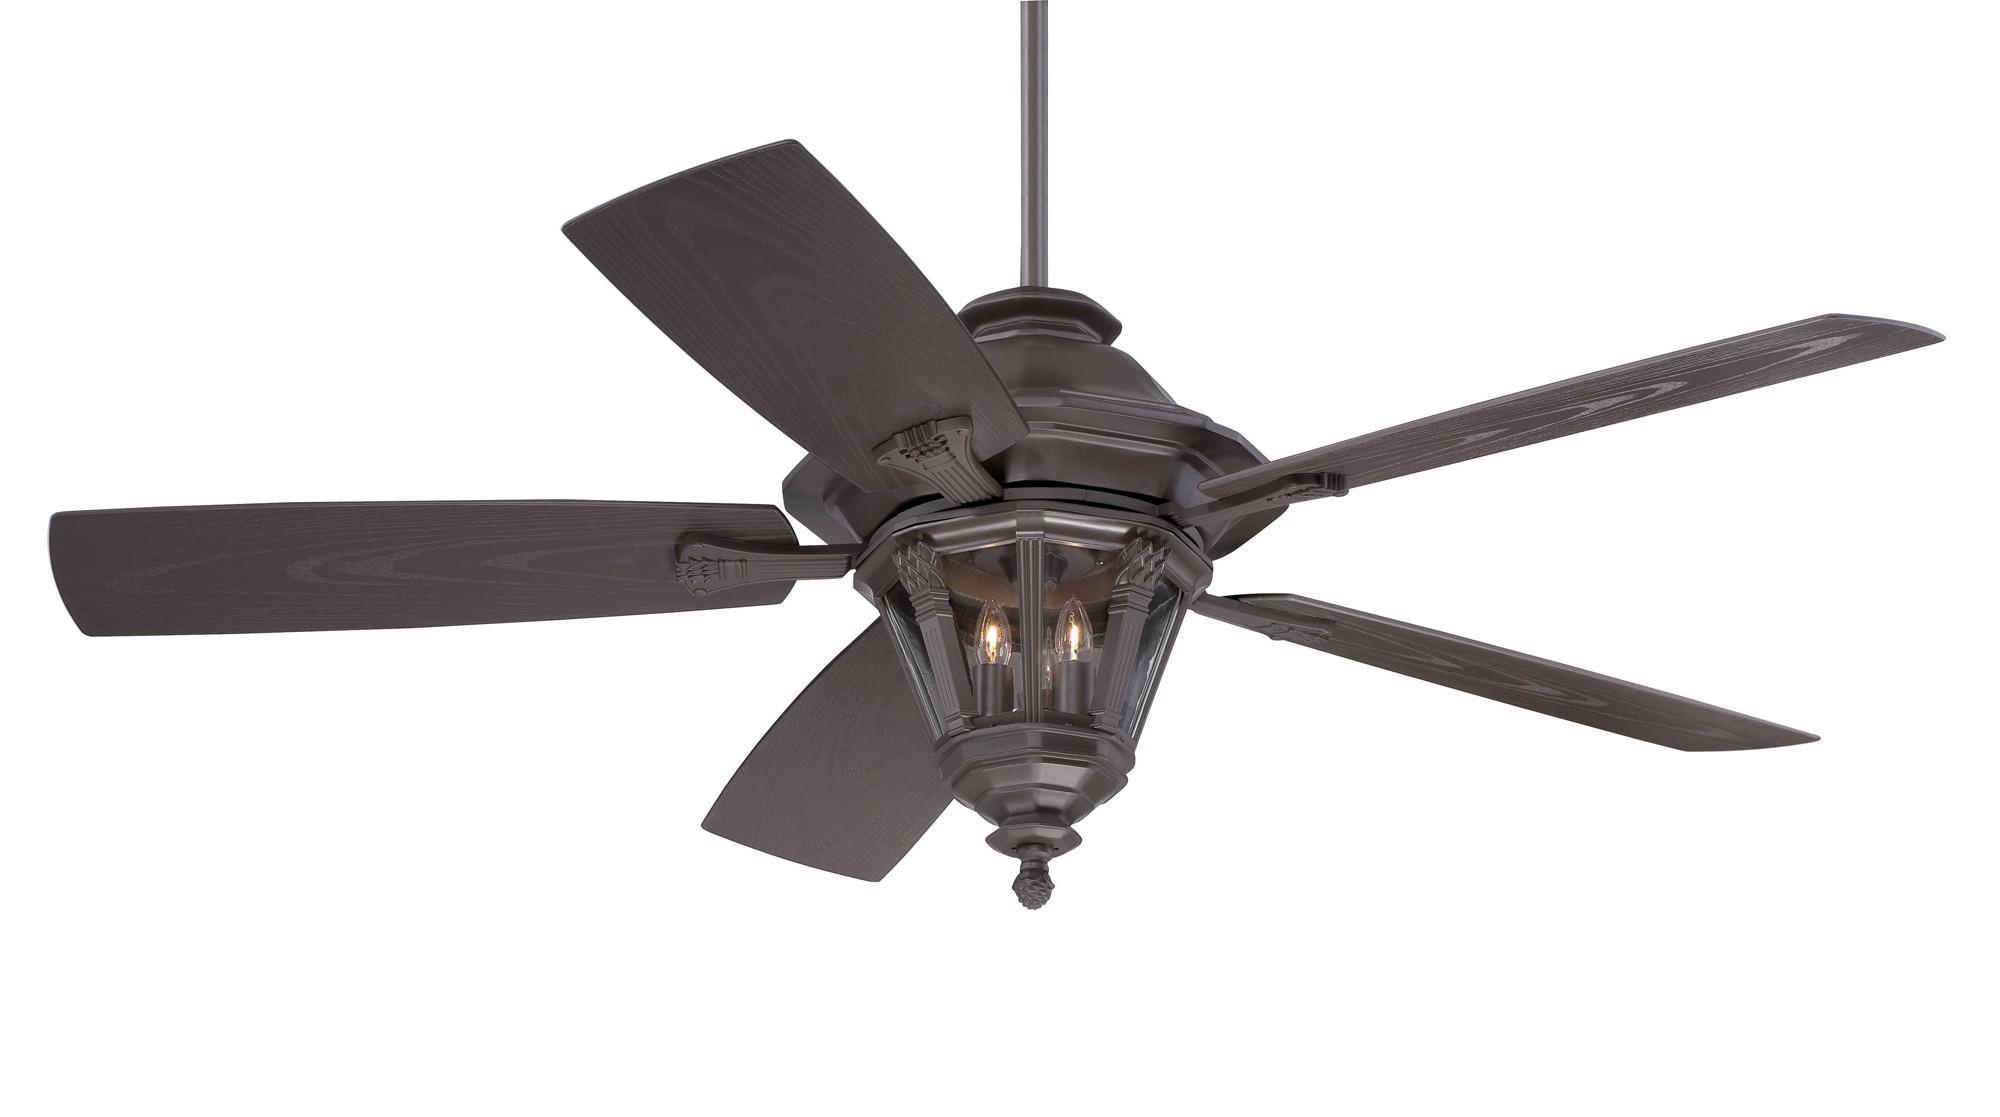 Ceiling: Stunning Outdoor Plug In Ceiling Fan Swag Ceiling Fan Regarding 2018 Low Profile Outdoor Ceiling Fans With Lights (View 9 of 20)